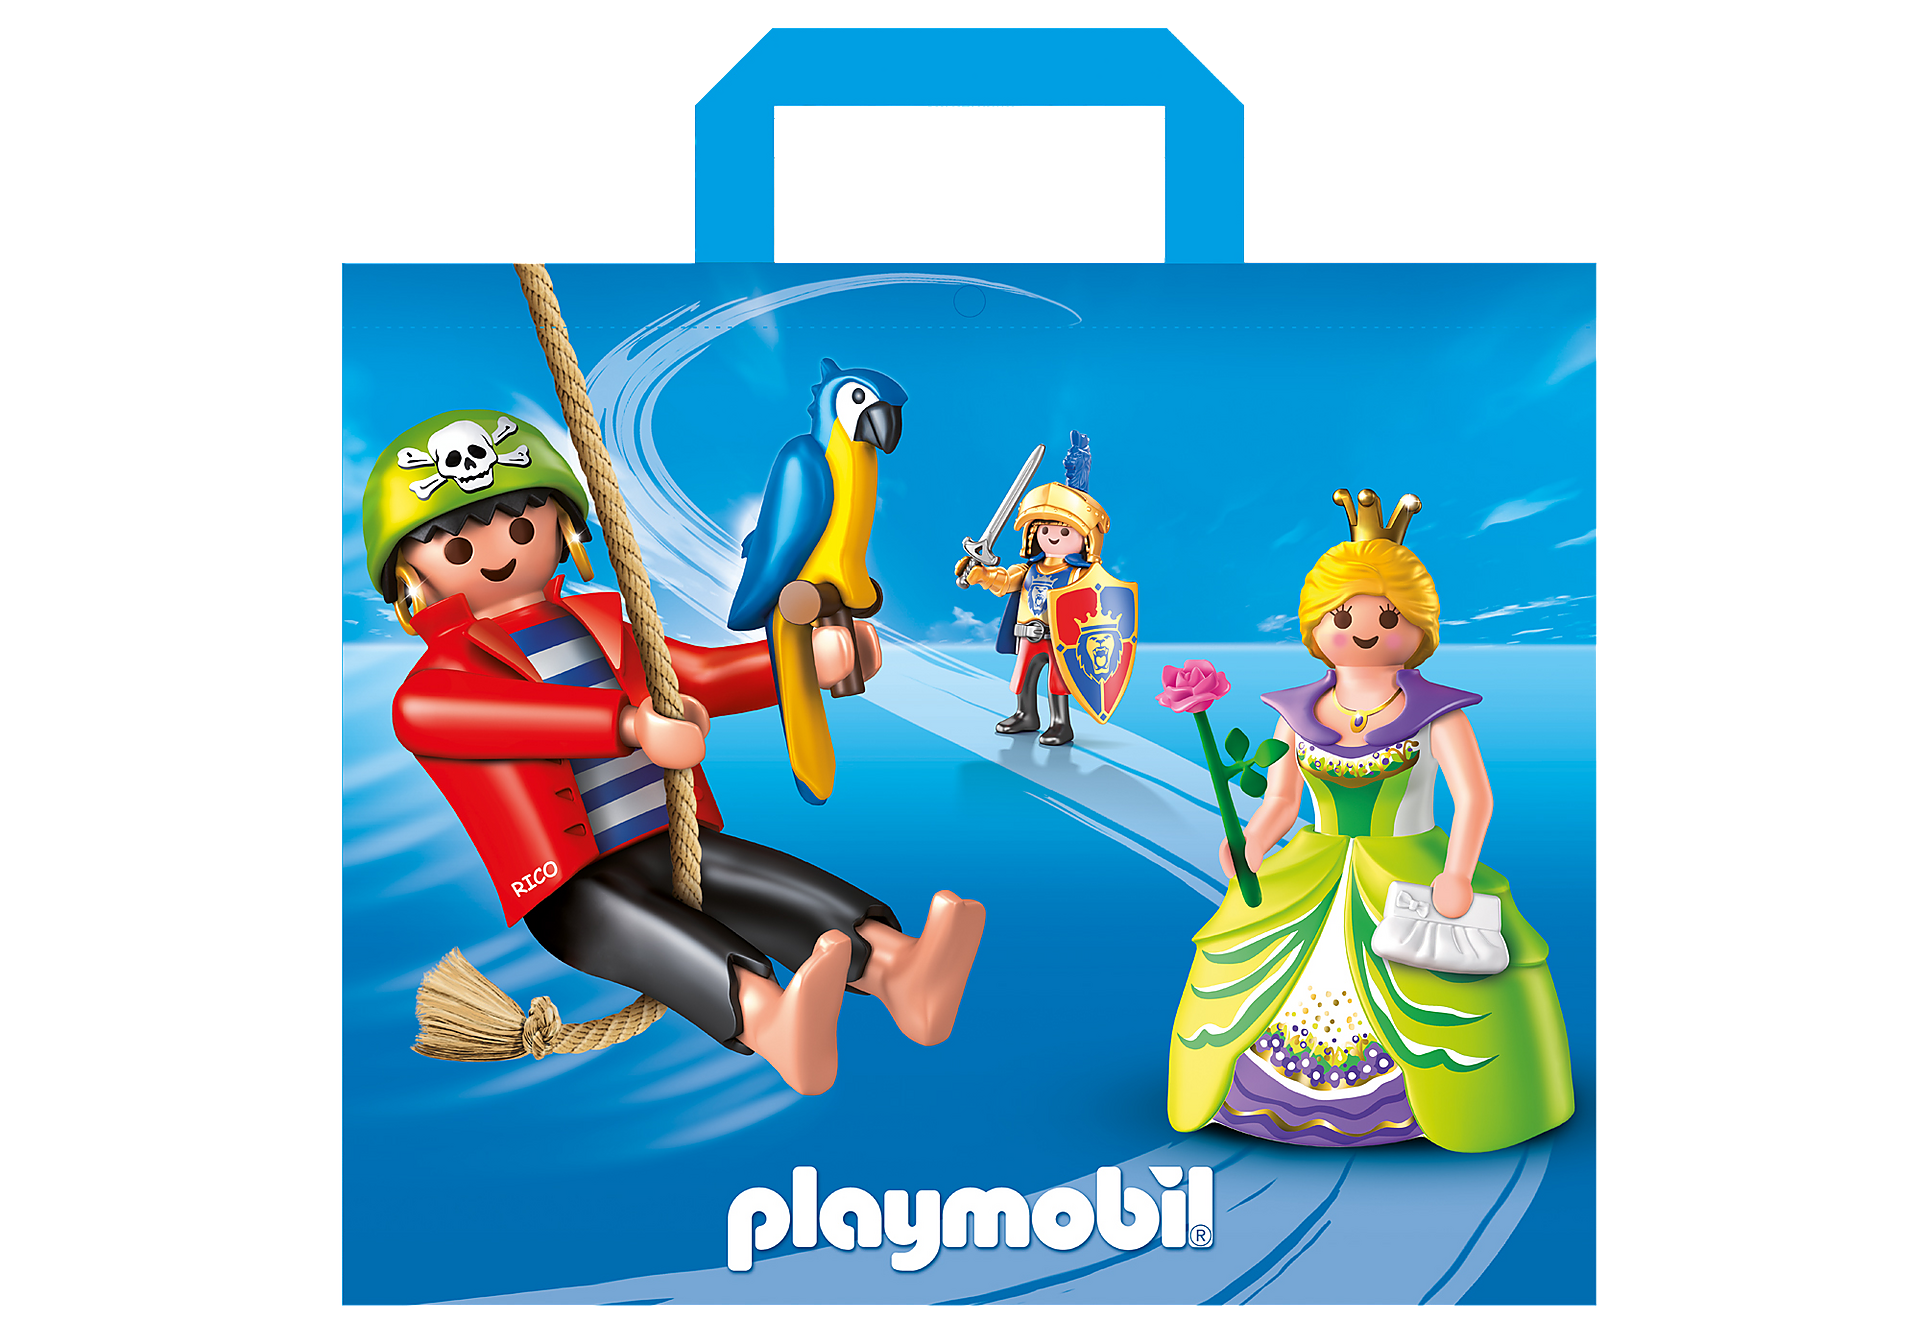 http://media.playmobil.com/i/playmobil/86489_product_detail/Indkøbspose large